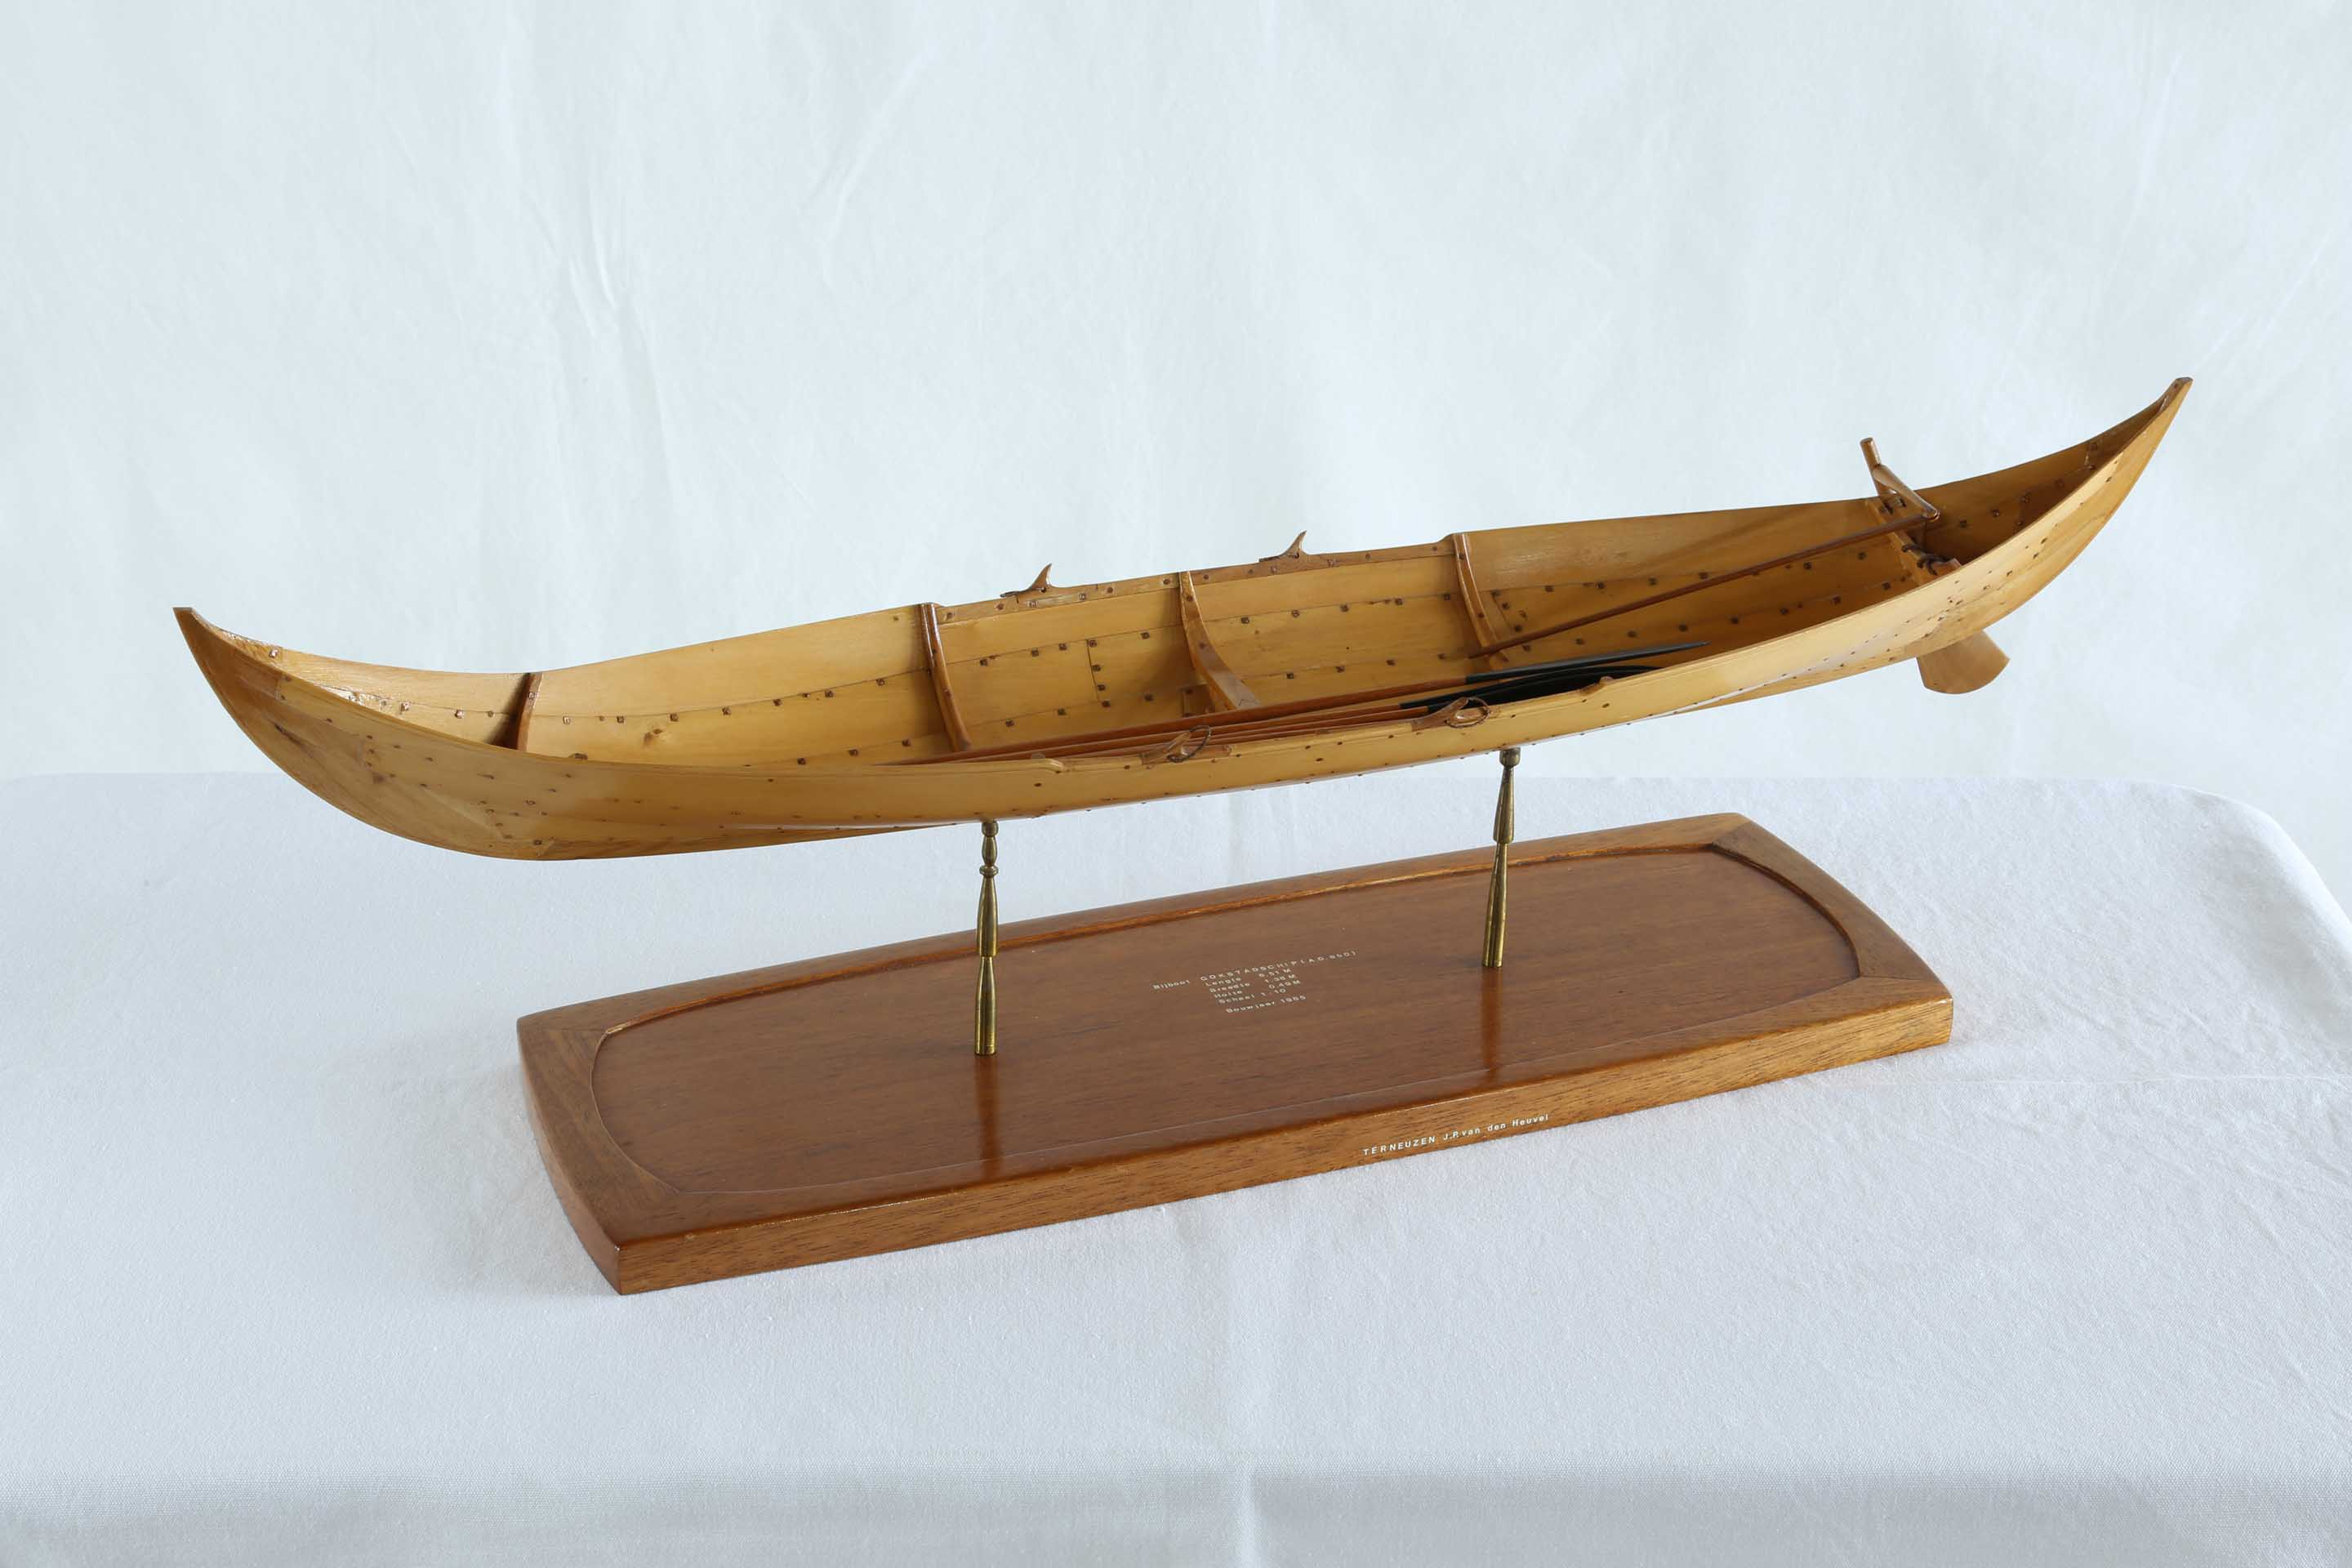 Model of one of the Gokstad ship's boats